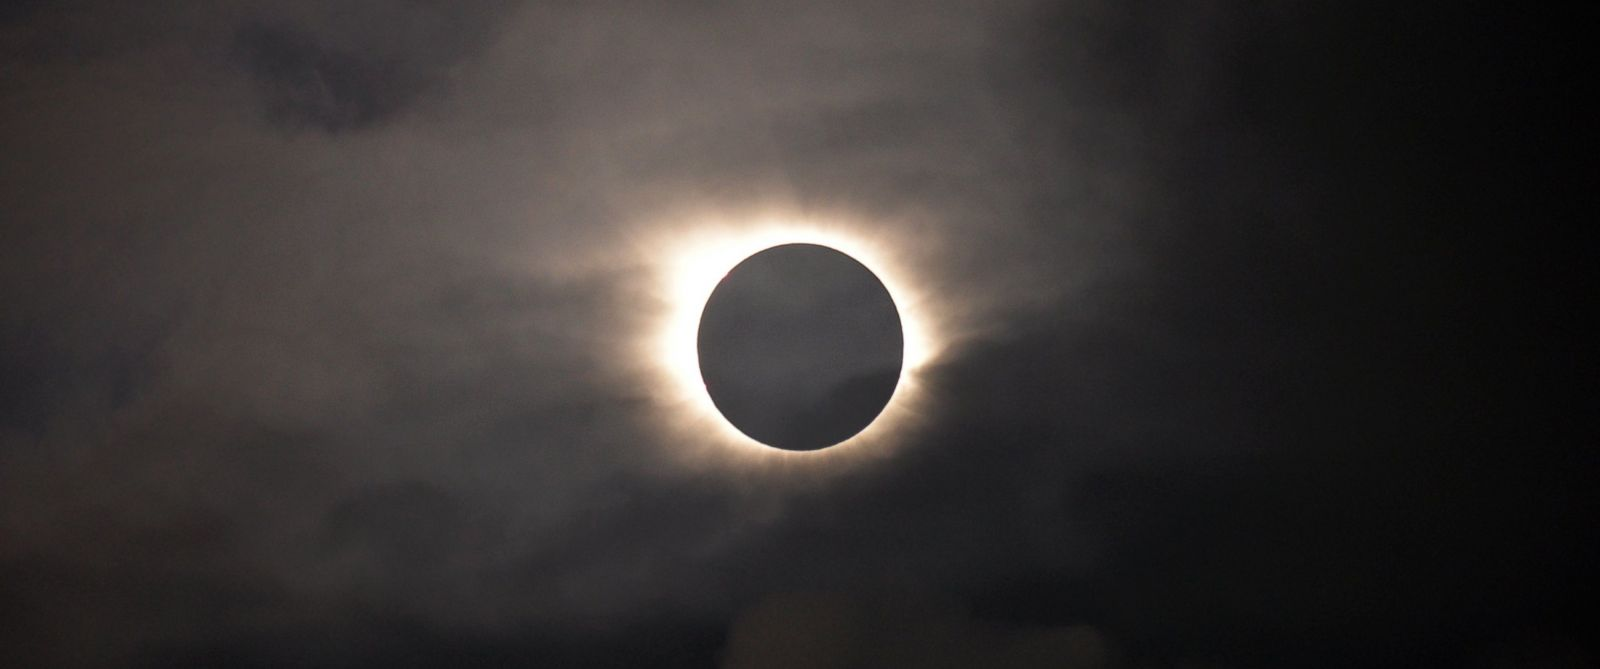 PHOTO: A total solar eclipse is visible through the clouds as seen from Vagar on the Faeroe Islands, March 20, 2015.